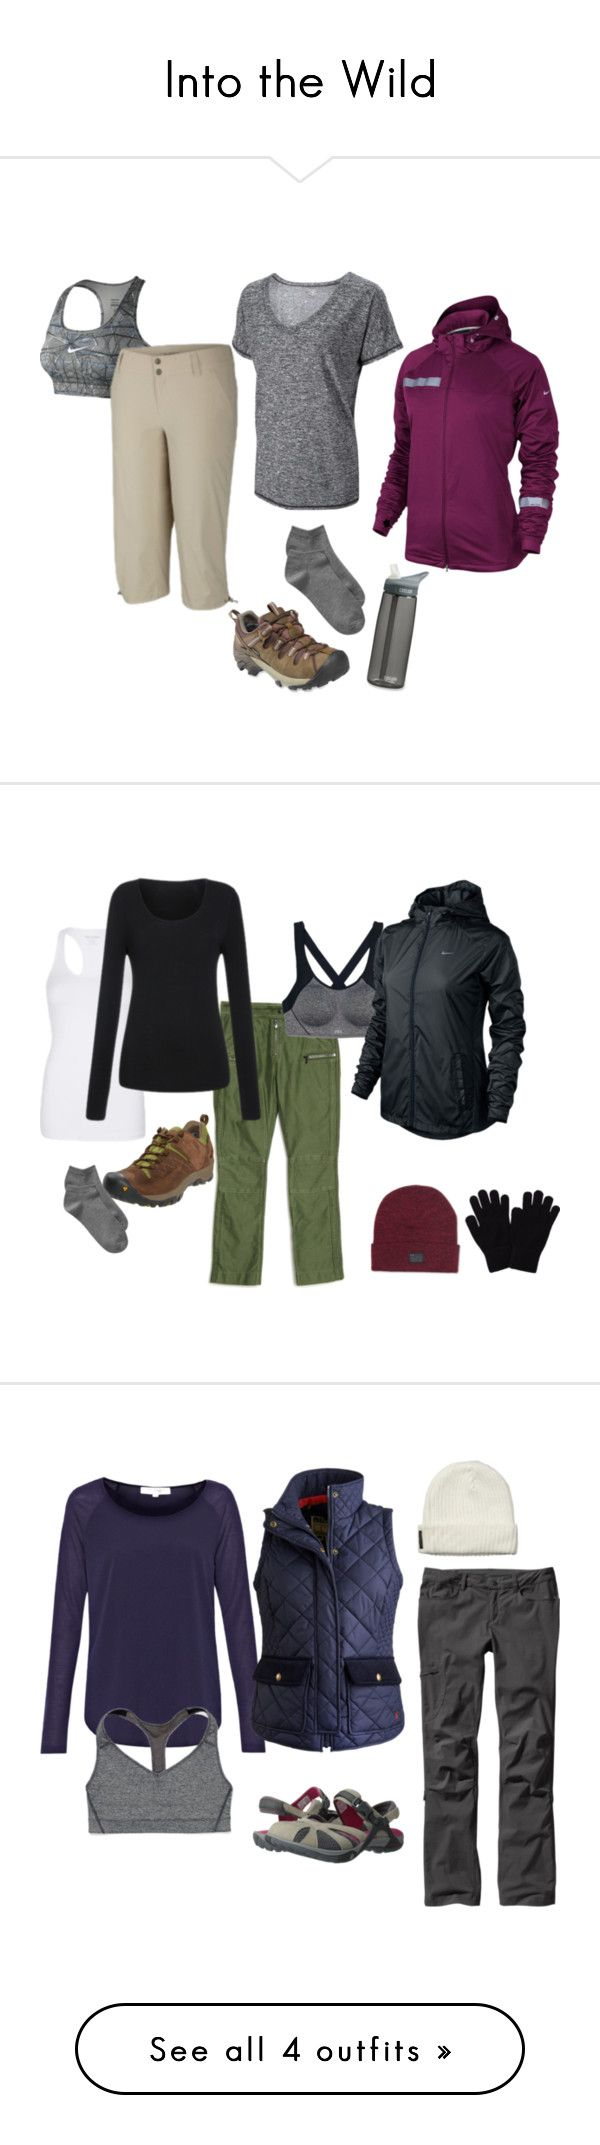 """Into the Wild"" by chanabaines ❤ liked on Polyvore featuring Keen Footwear, NIKE, Columbia, Gap, CamelBak, jacket, Hiking, activewear, capris and merrel"